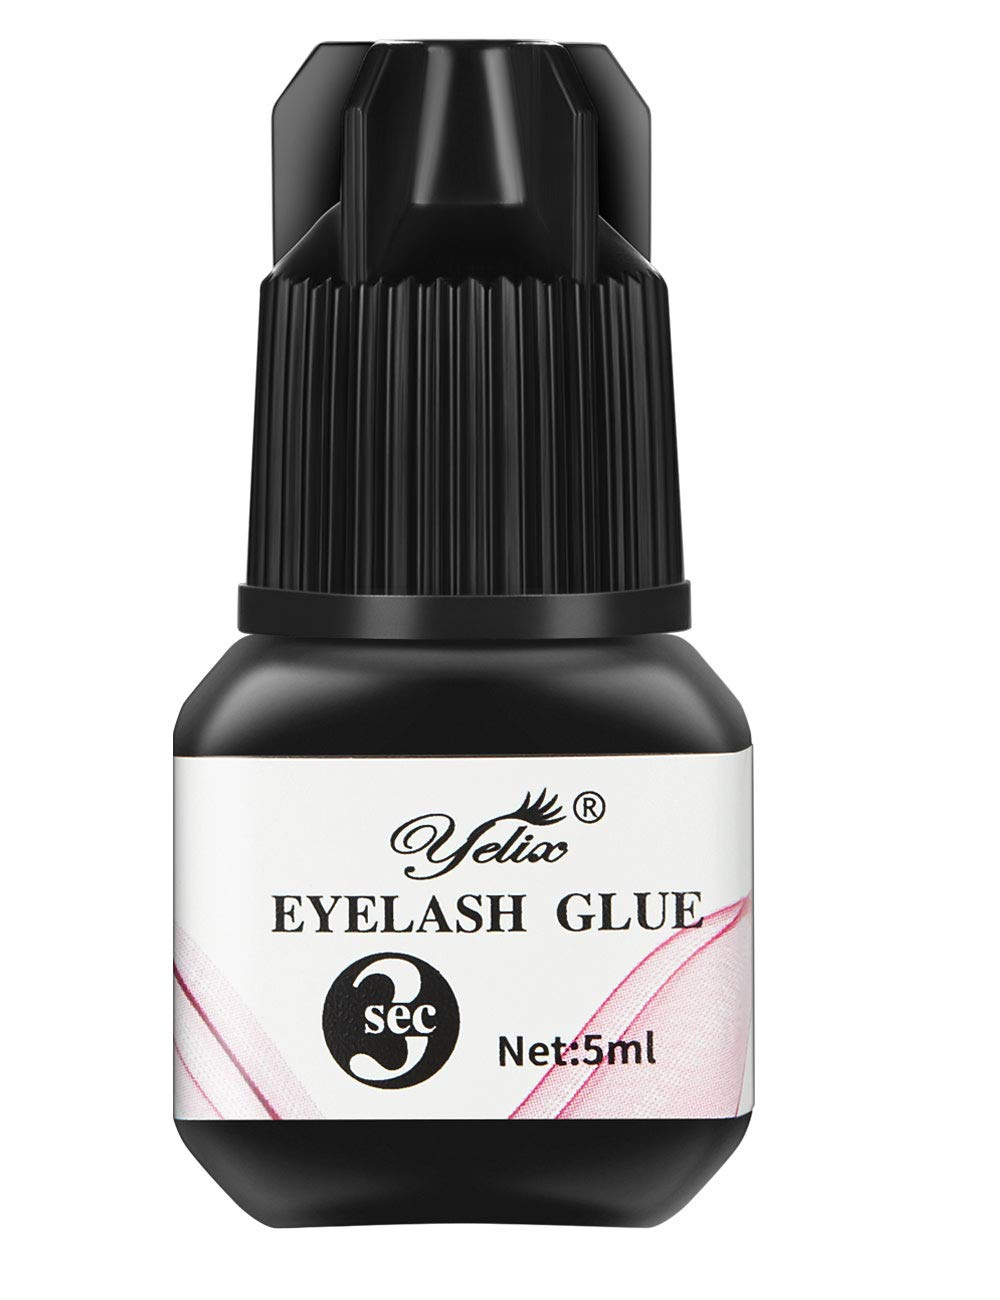 Professional Eyelash Glue - Extra Strong Bonding and Premium Adhesive for Individual Eyelash Extensions 1-2 Second Drying Time 6-7 Weeks Retention by Yelix (5ml)